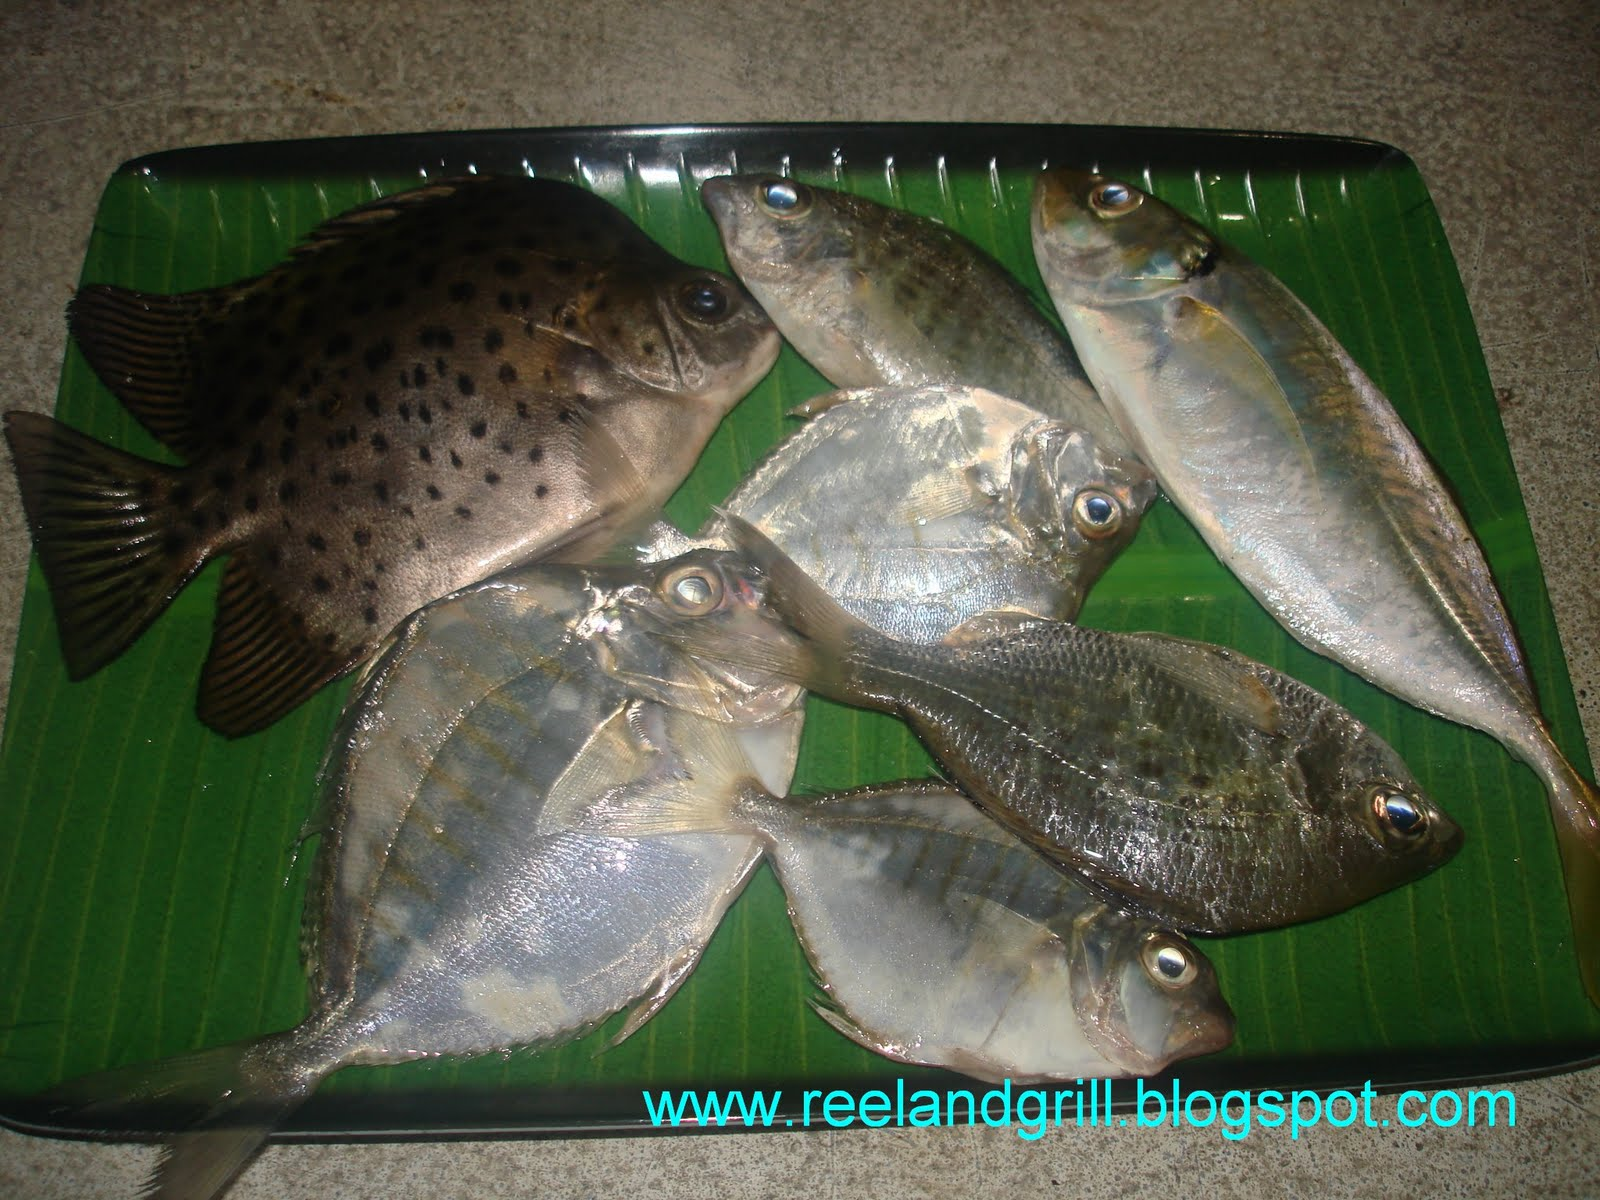 Reel and grill mixed bag of fish from sri lanka waters for Sri lanka fishing